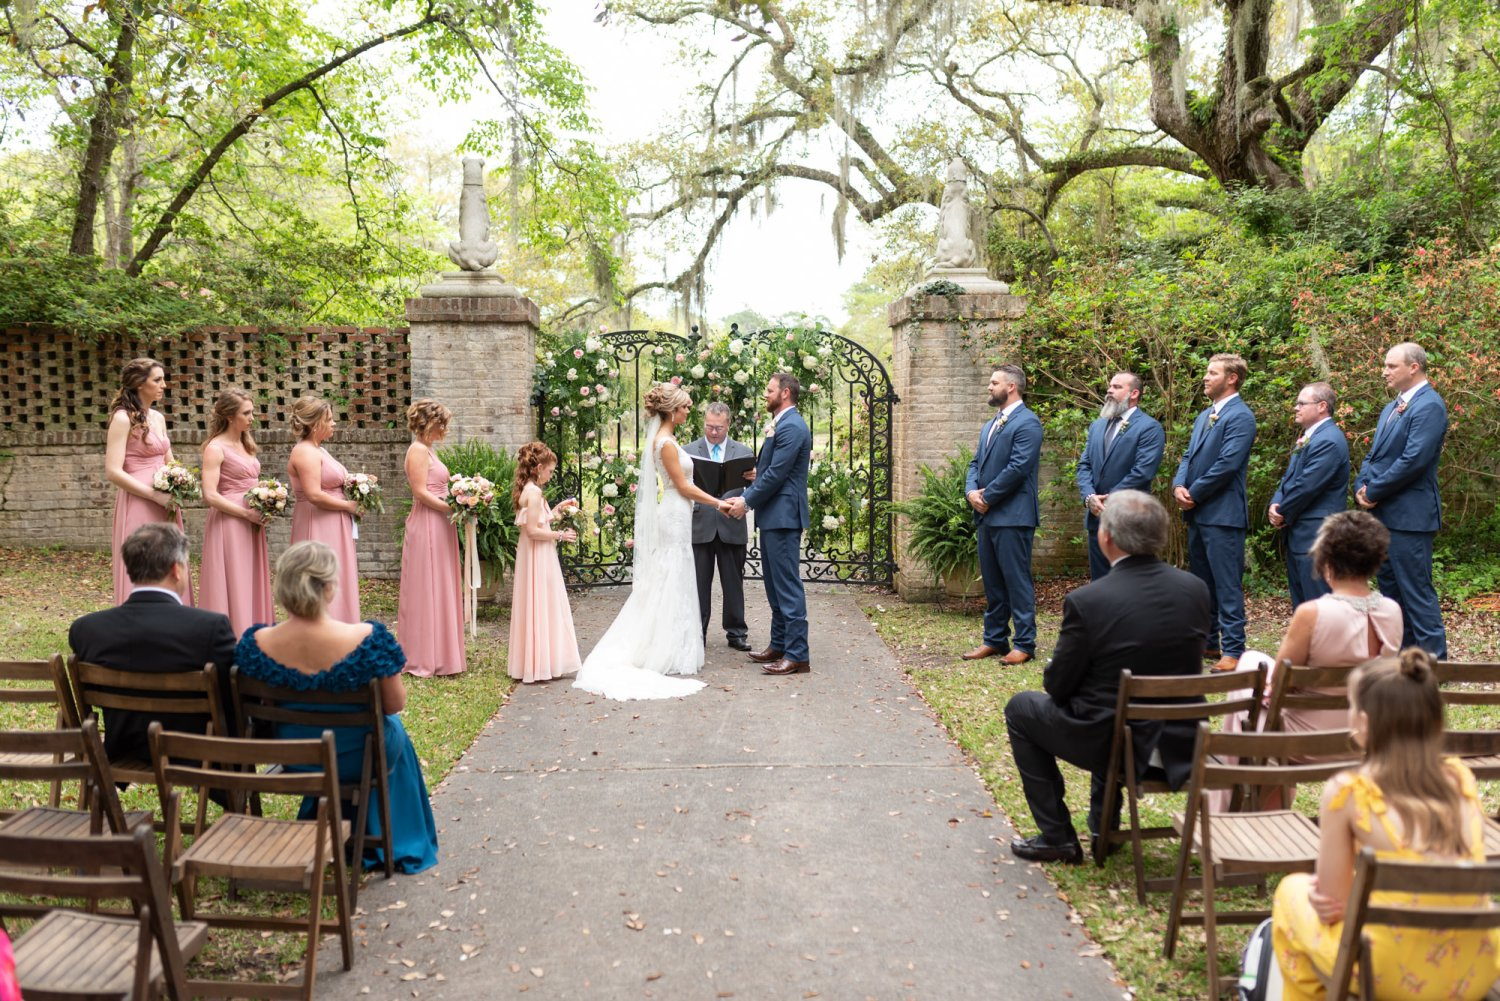 Beautiful ceremony location near the gates - Brookgreen Gardens